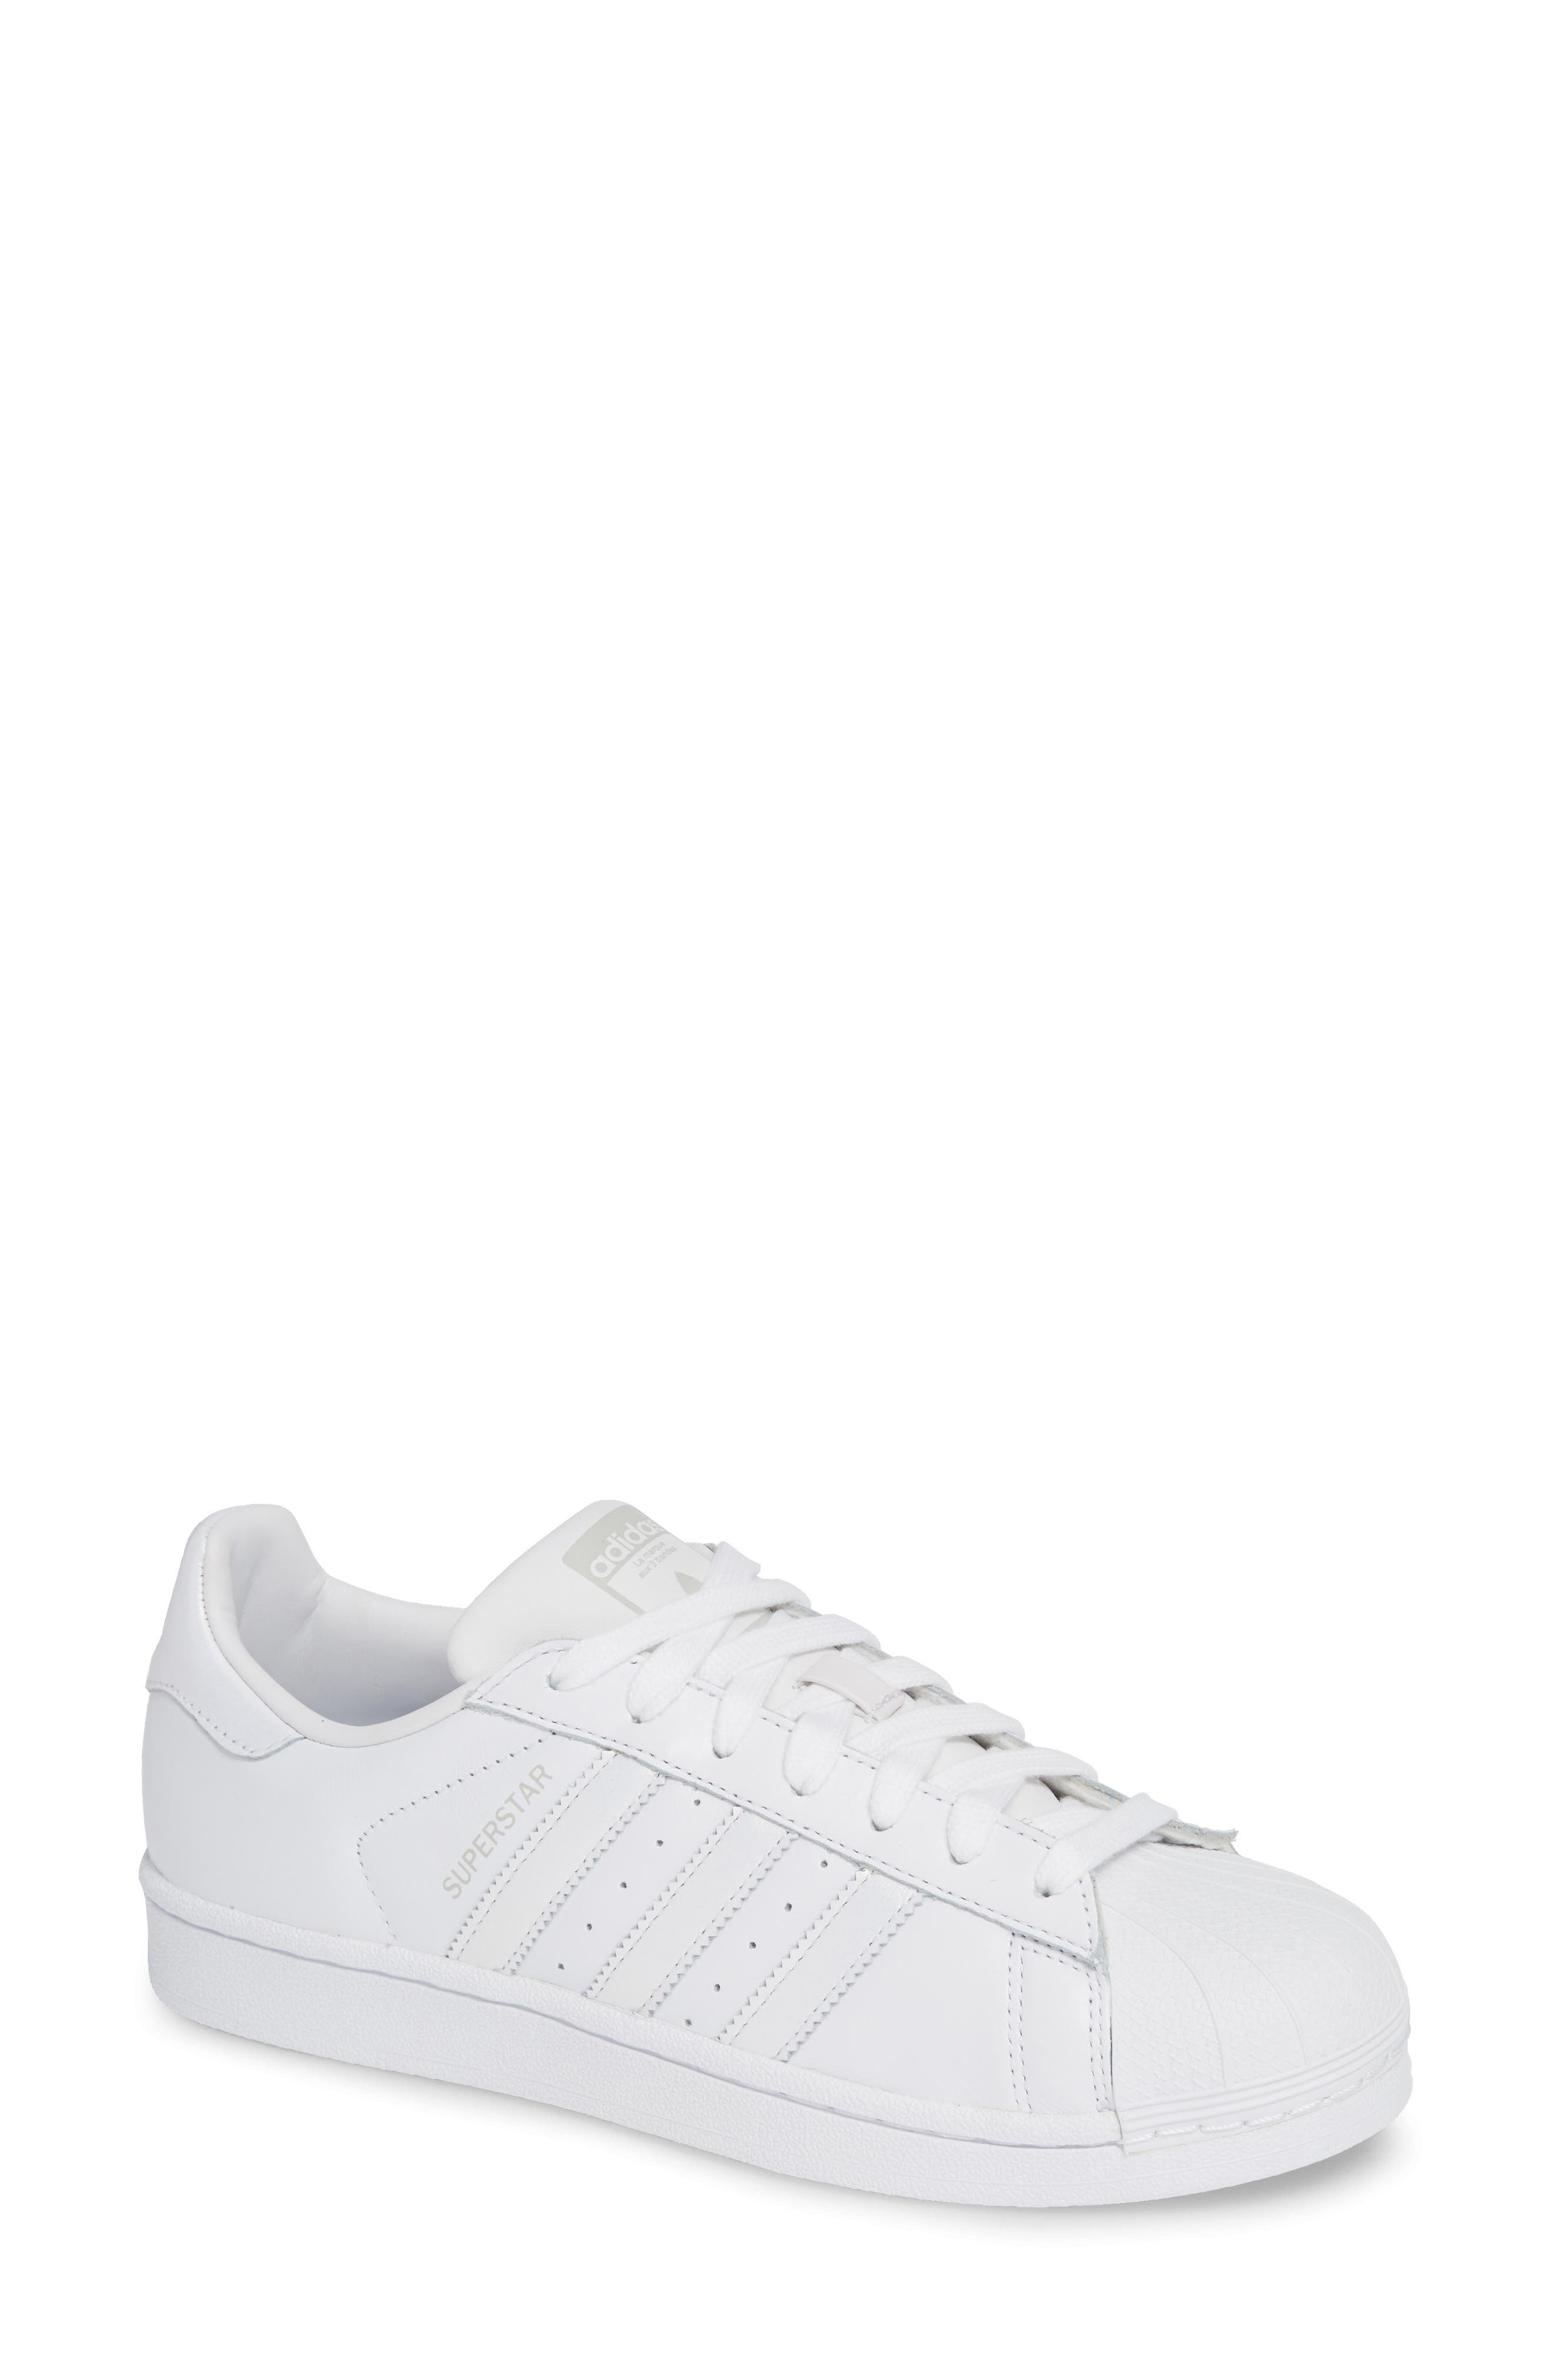 Superstar Sneaker,                         Main,                         color, White/ White/ Grey One